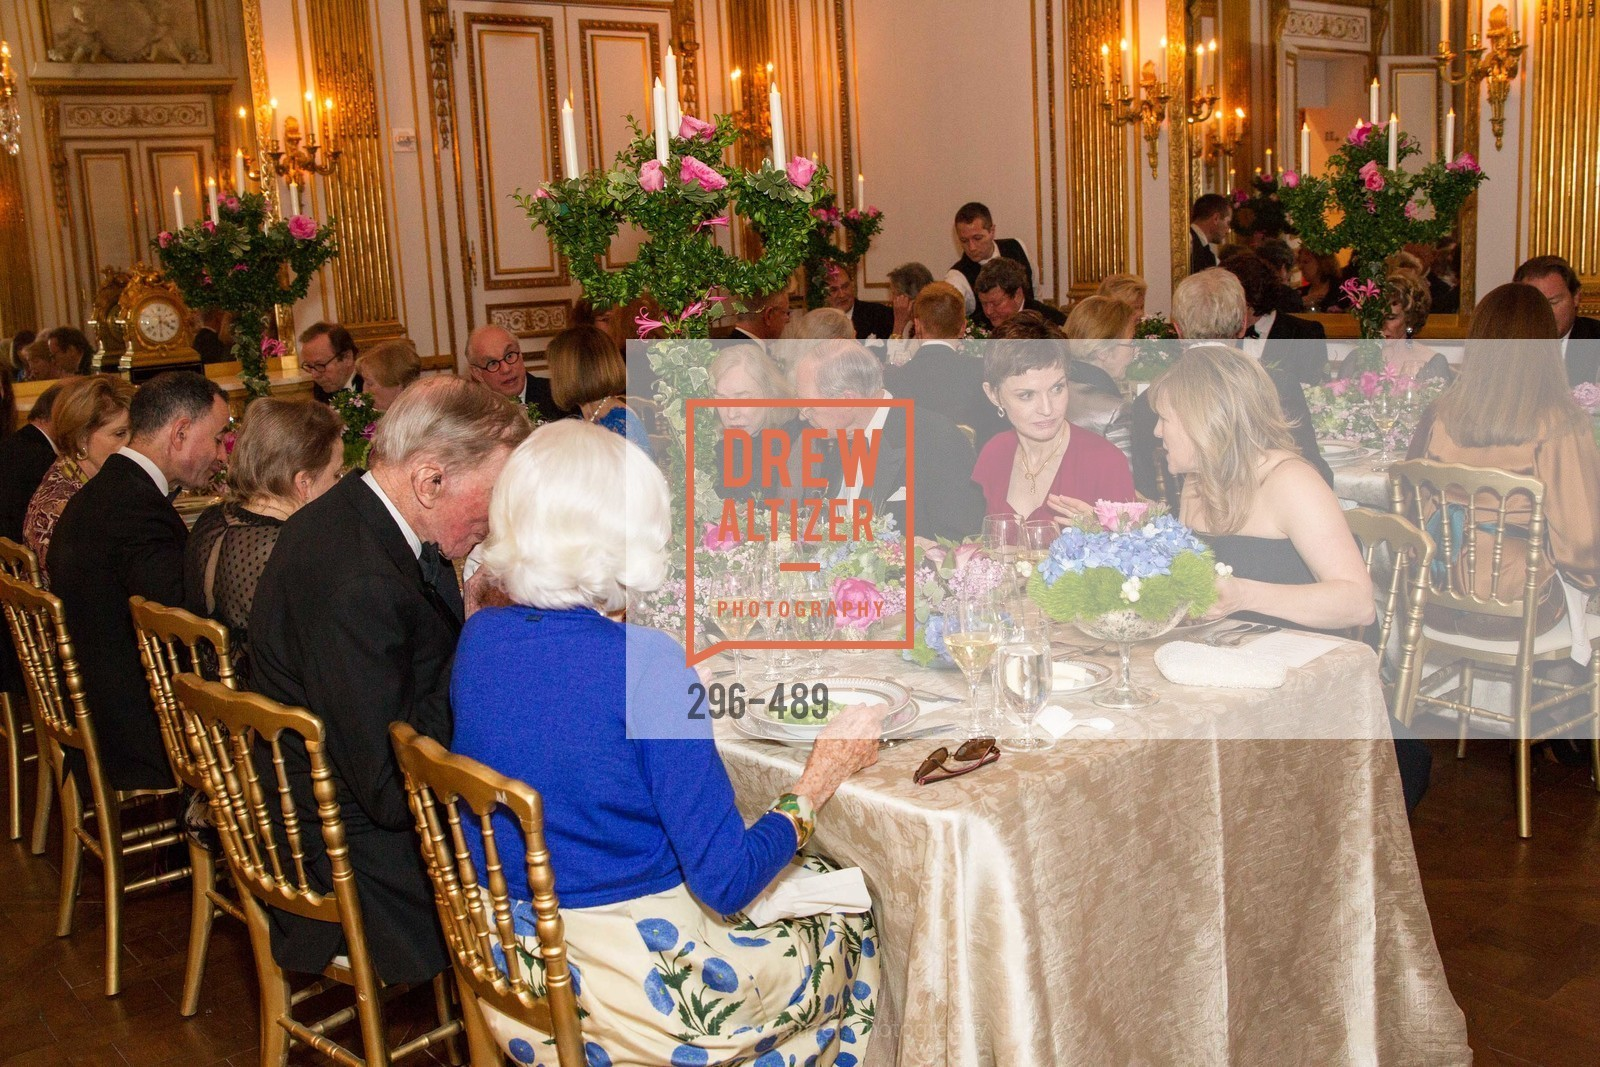 Gretchen Kimball, Richard Goss, Denise Littlefield Sobel, Maria Santangelo, The Salon Doré from the Hôtel de La Trémoille Private Dinner, US. The Battery, April 1st, 2014,Drew Altizer, Drew Altizer Photography, full-service event agency, private events, San Francisco photographer, photographer California